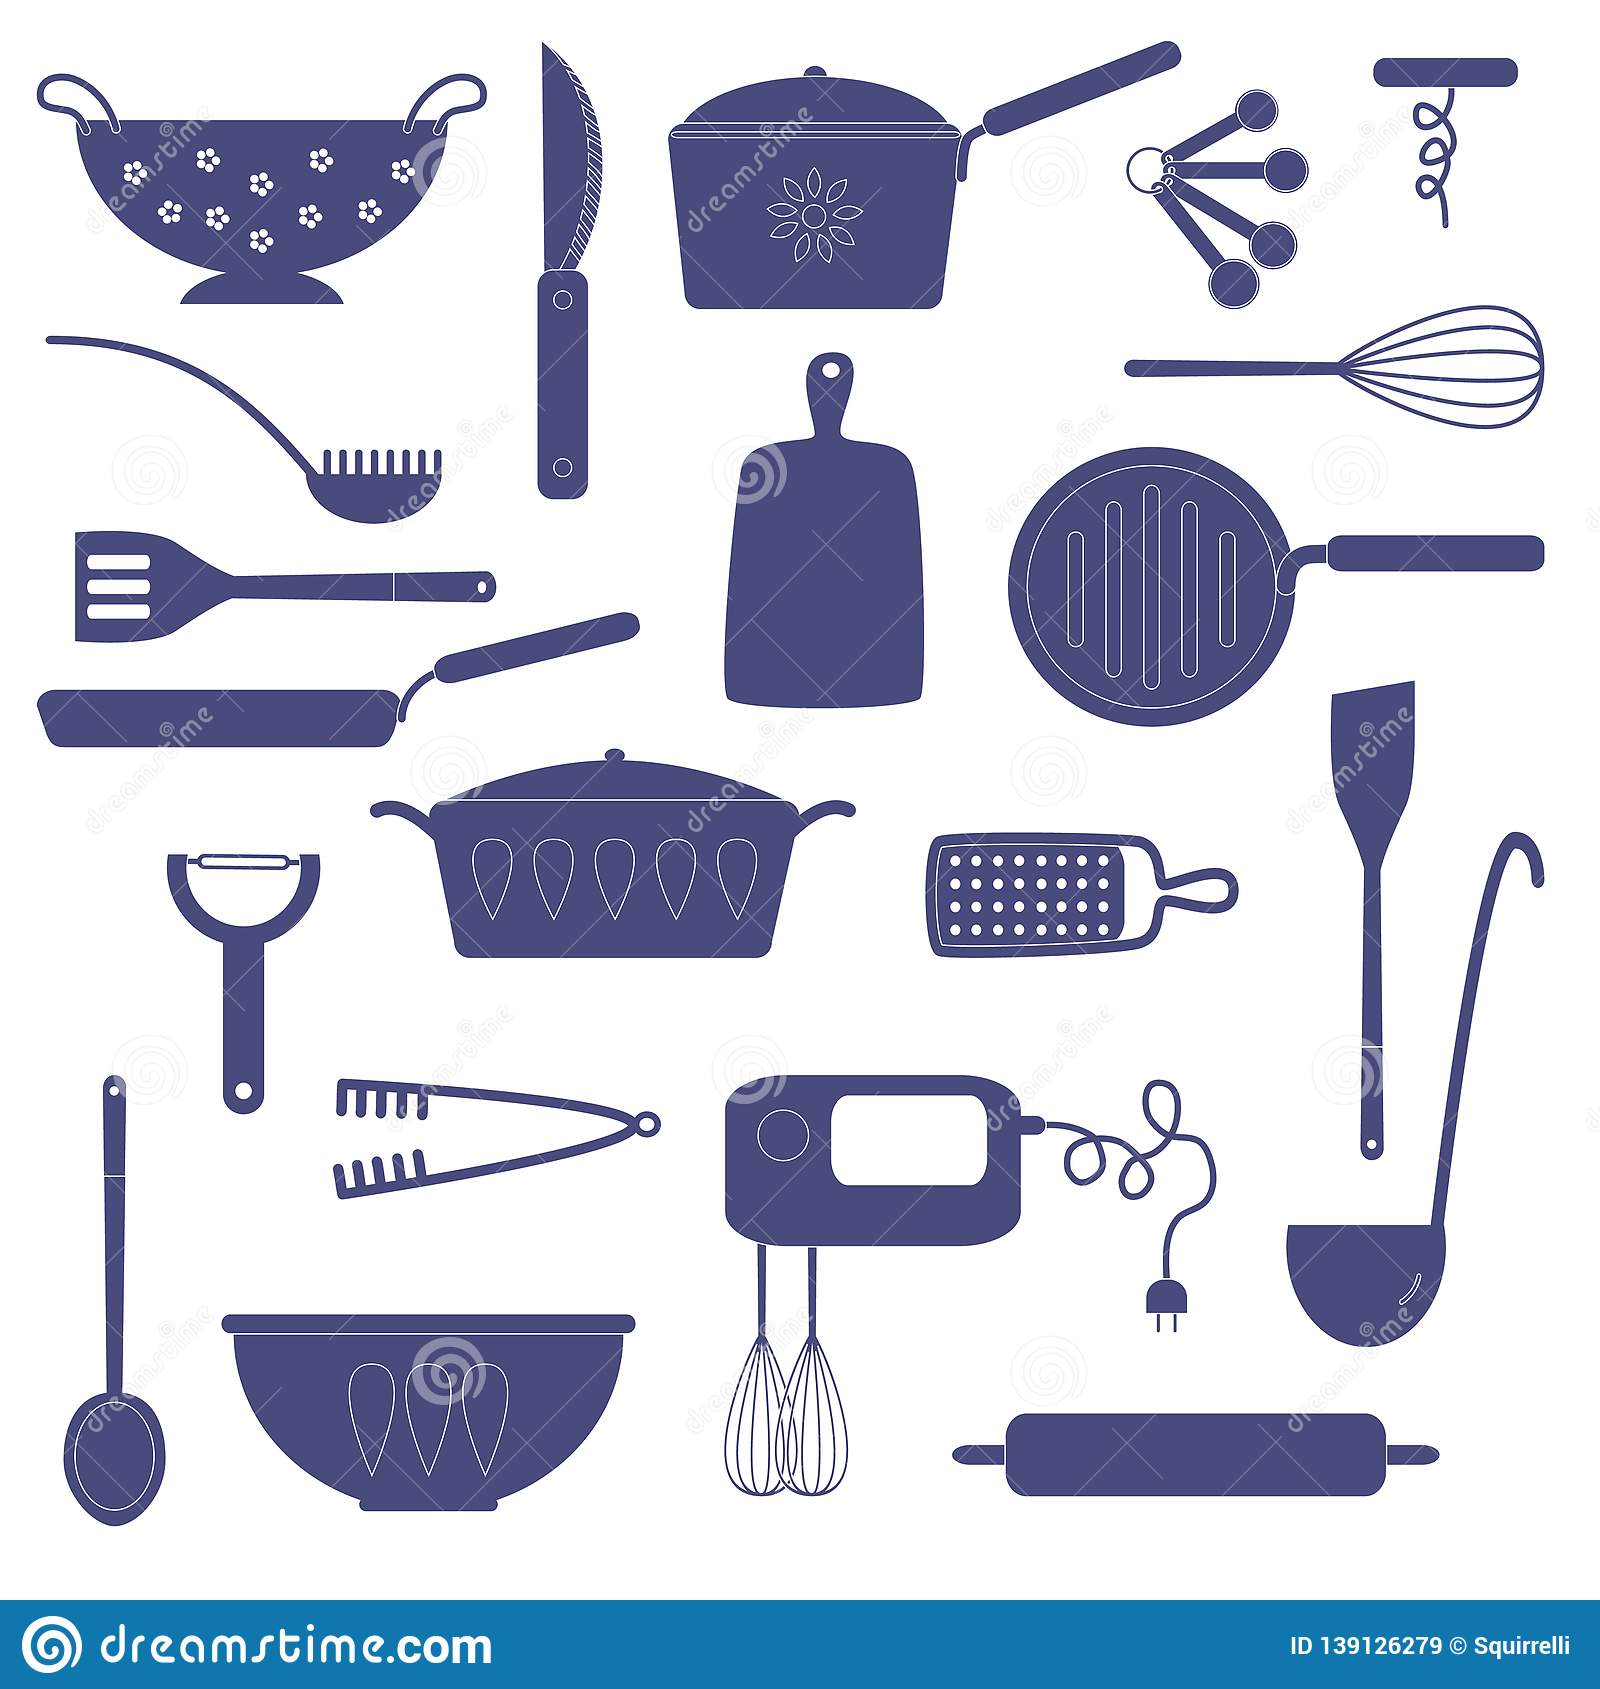 Kitchen utensils and equipment for cooking